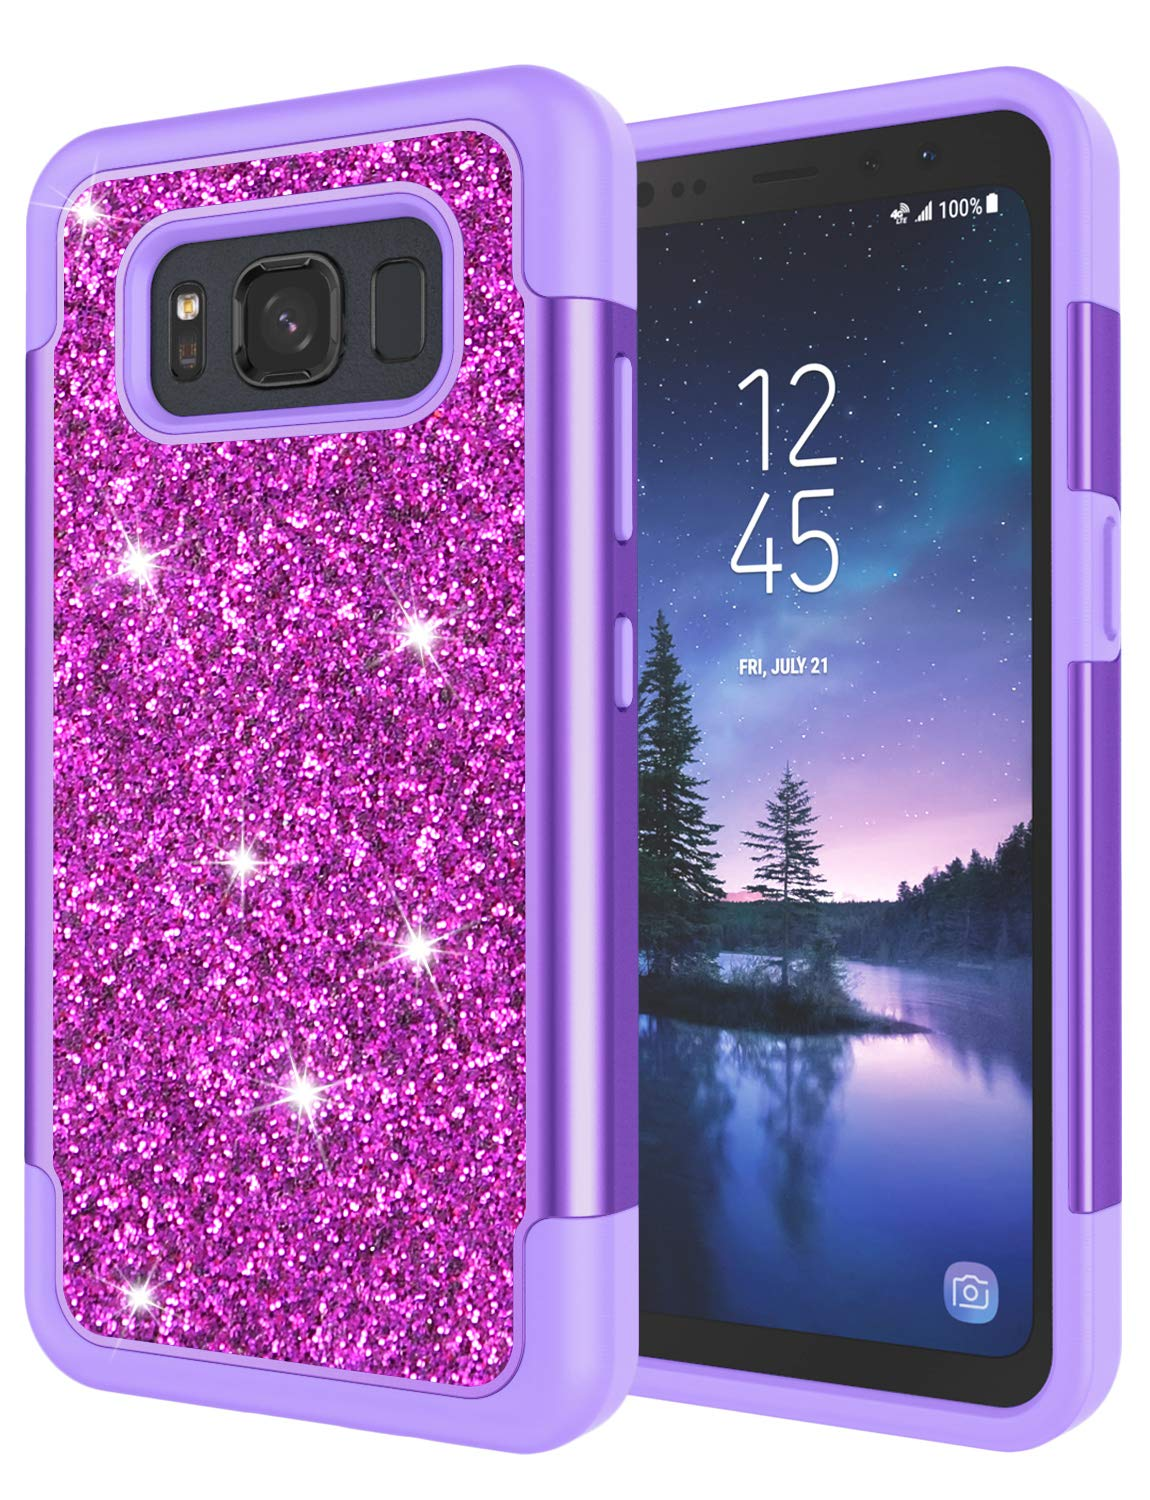 Galaxy S8 Active Case, S8 Active Case for Grils, Jeylly Glitter Luxury Crystal Dual Layer Shockproof Hard PC Soft TPU Inner Protector Case Cover for ...